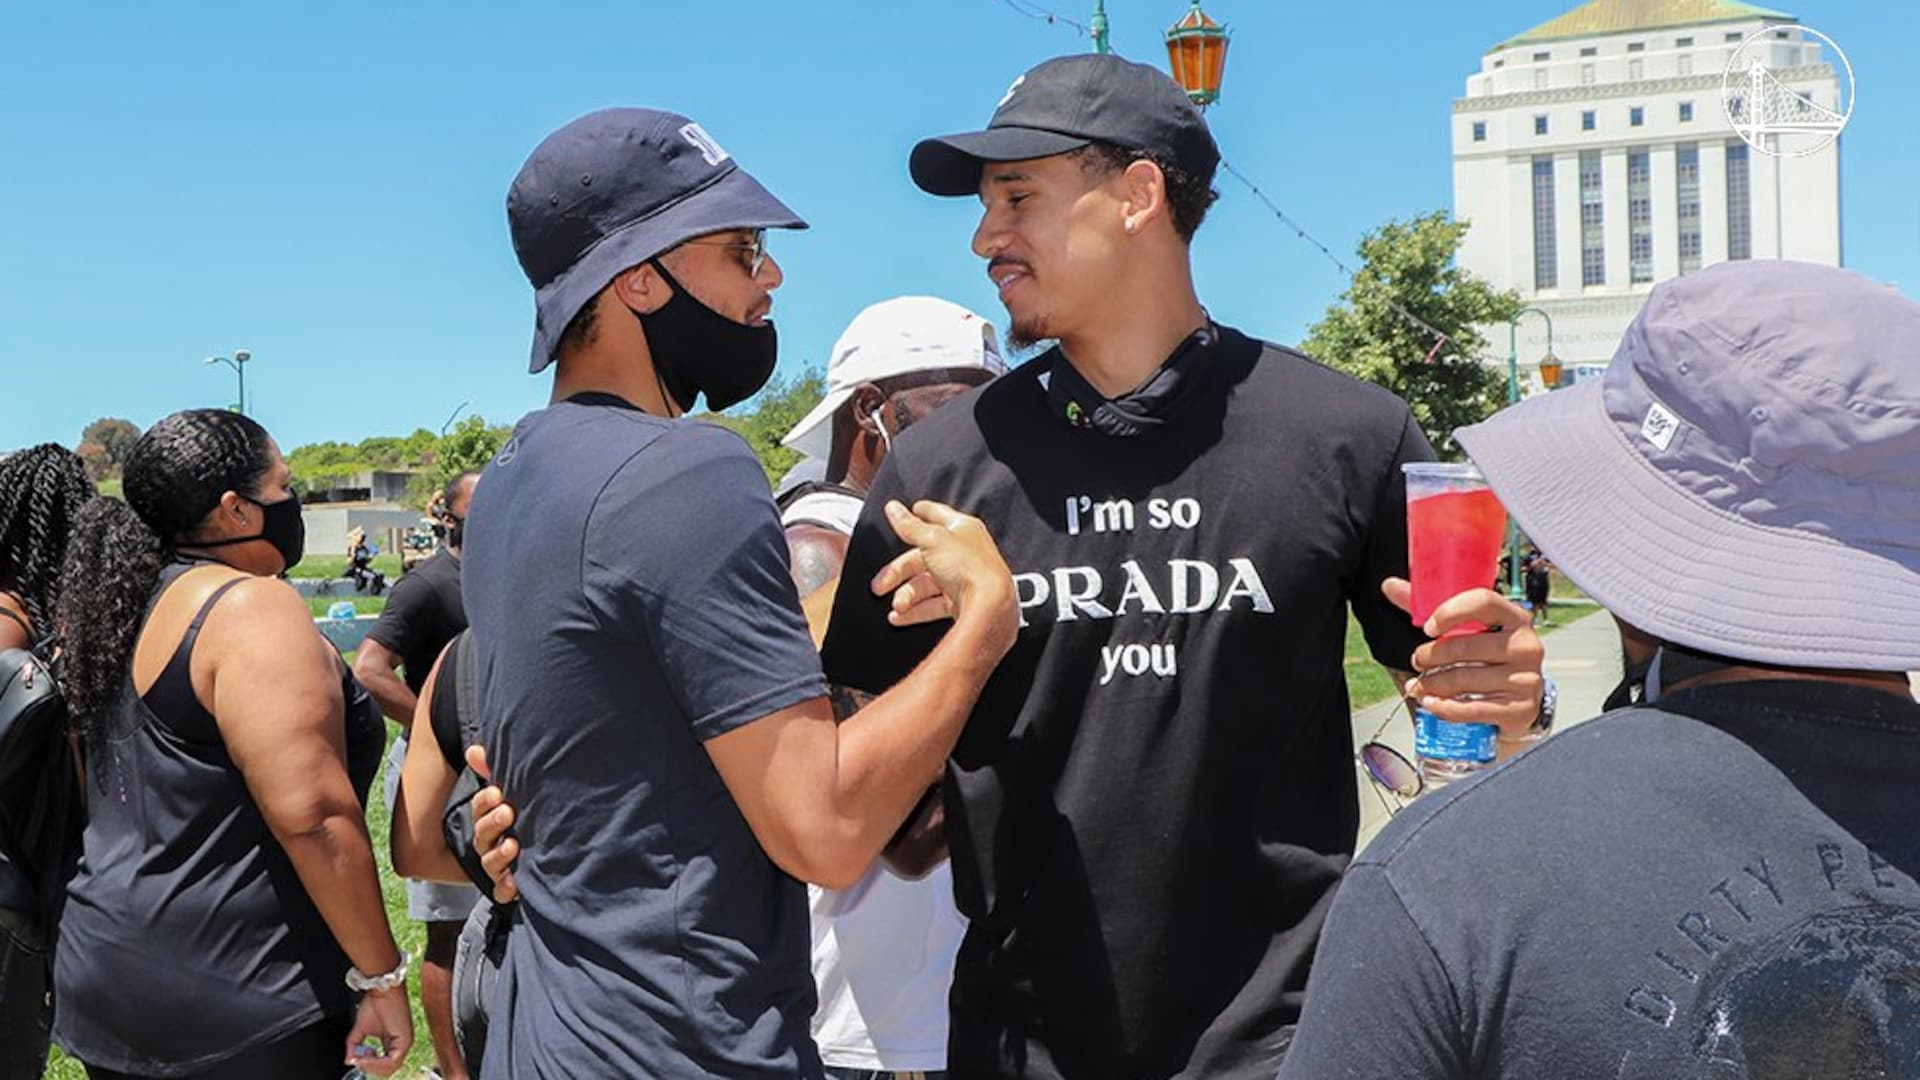 Stephen Curry, Klay Thompson among Warriors at Oakland protest